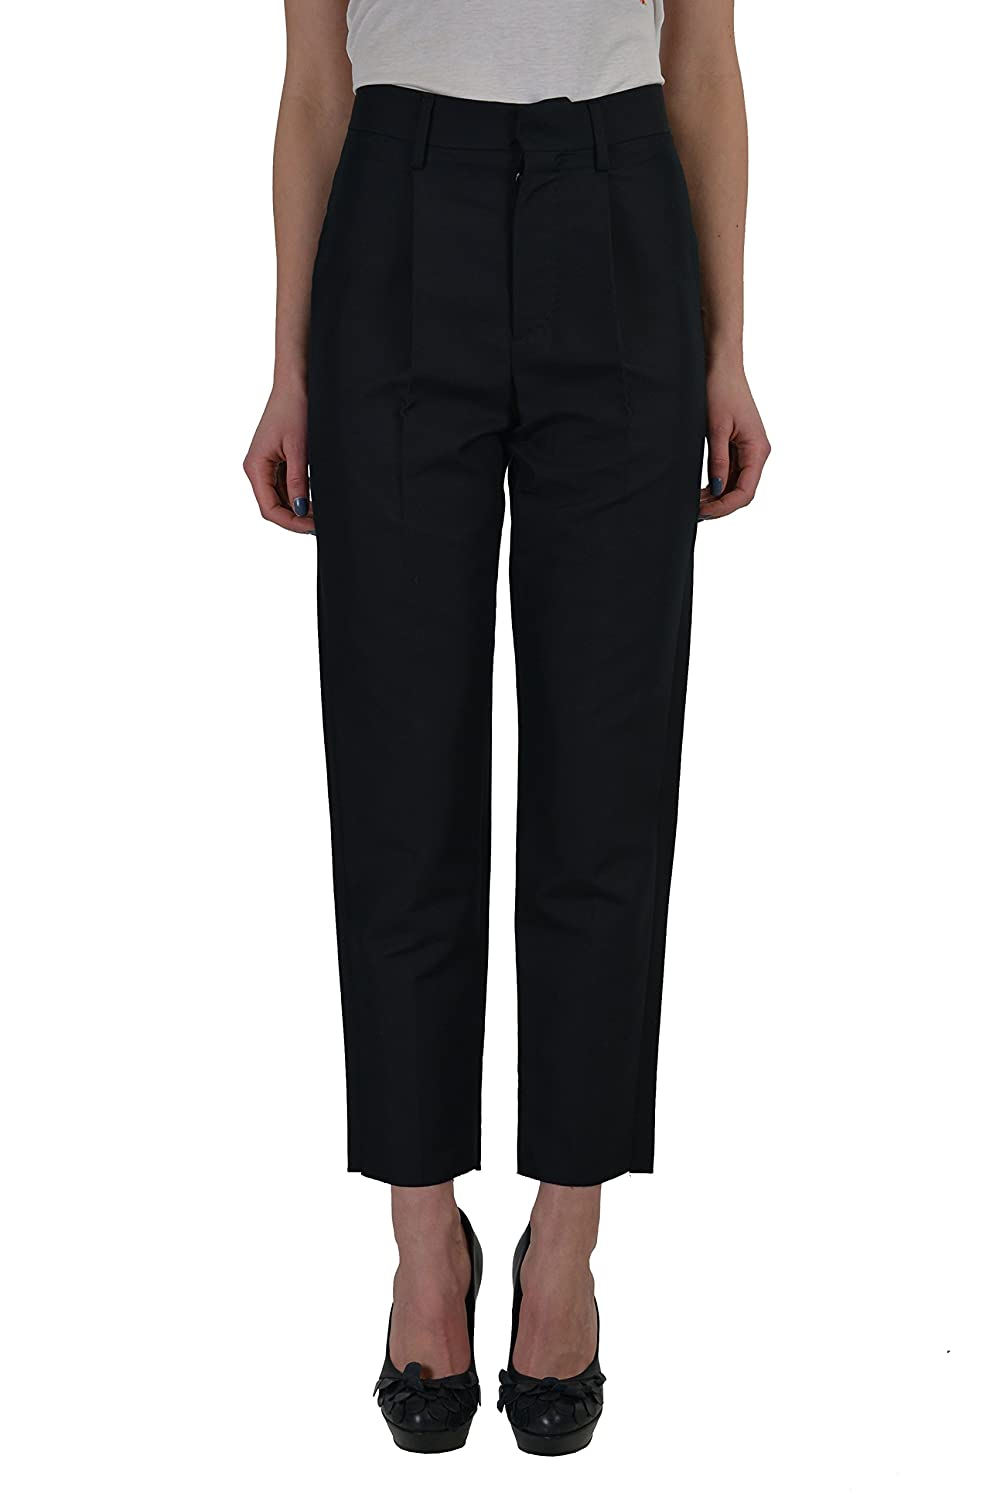 Dsquared2 Women's Black Silk Pleated Cropped Pants US 4 IT 40